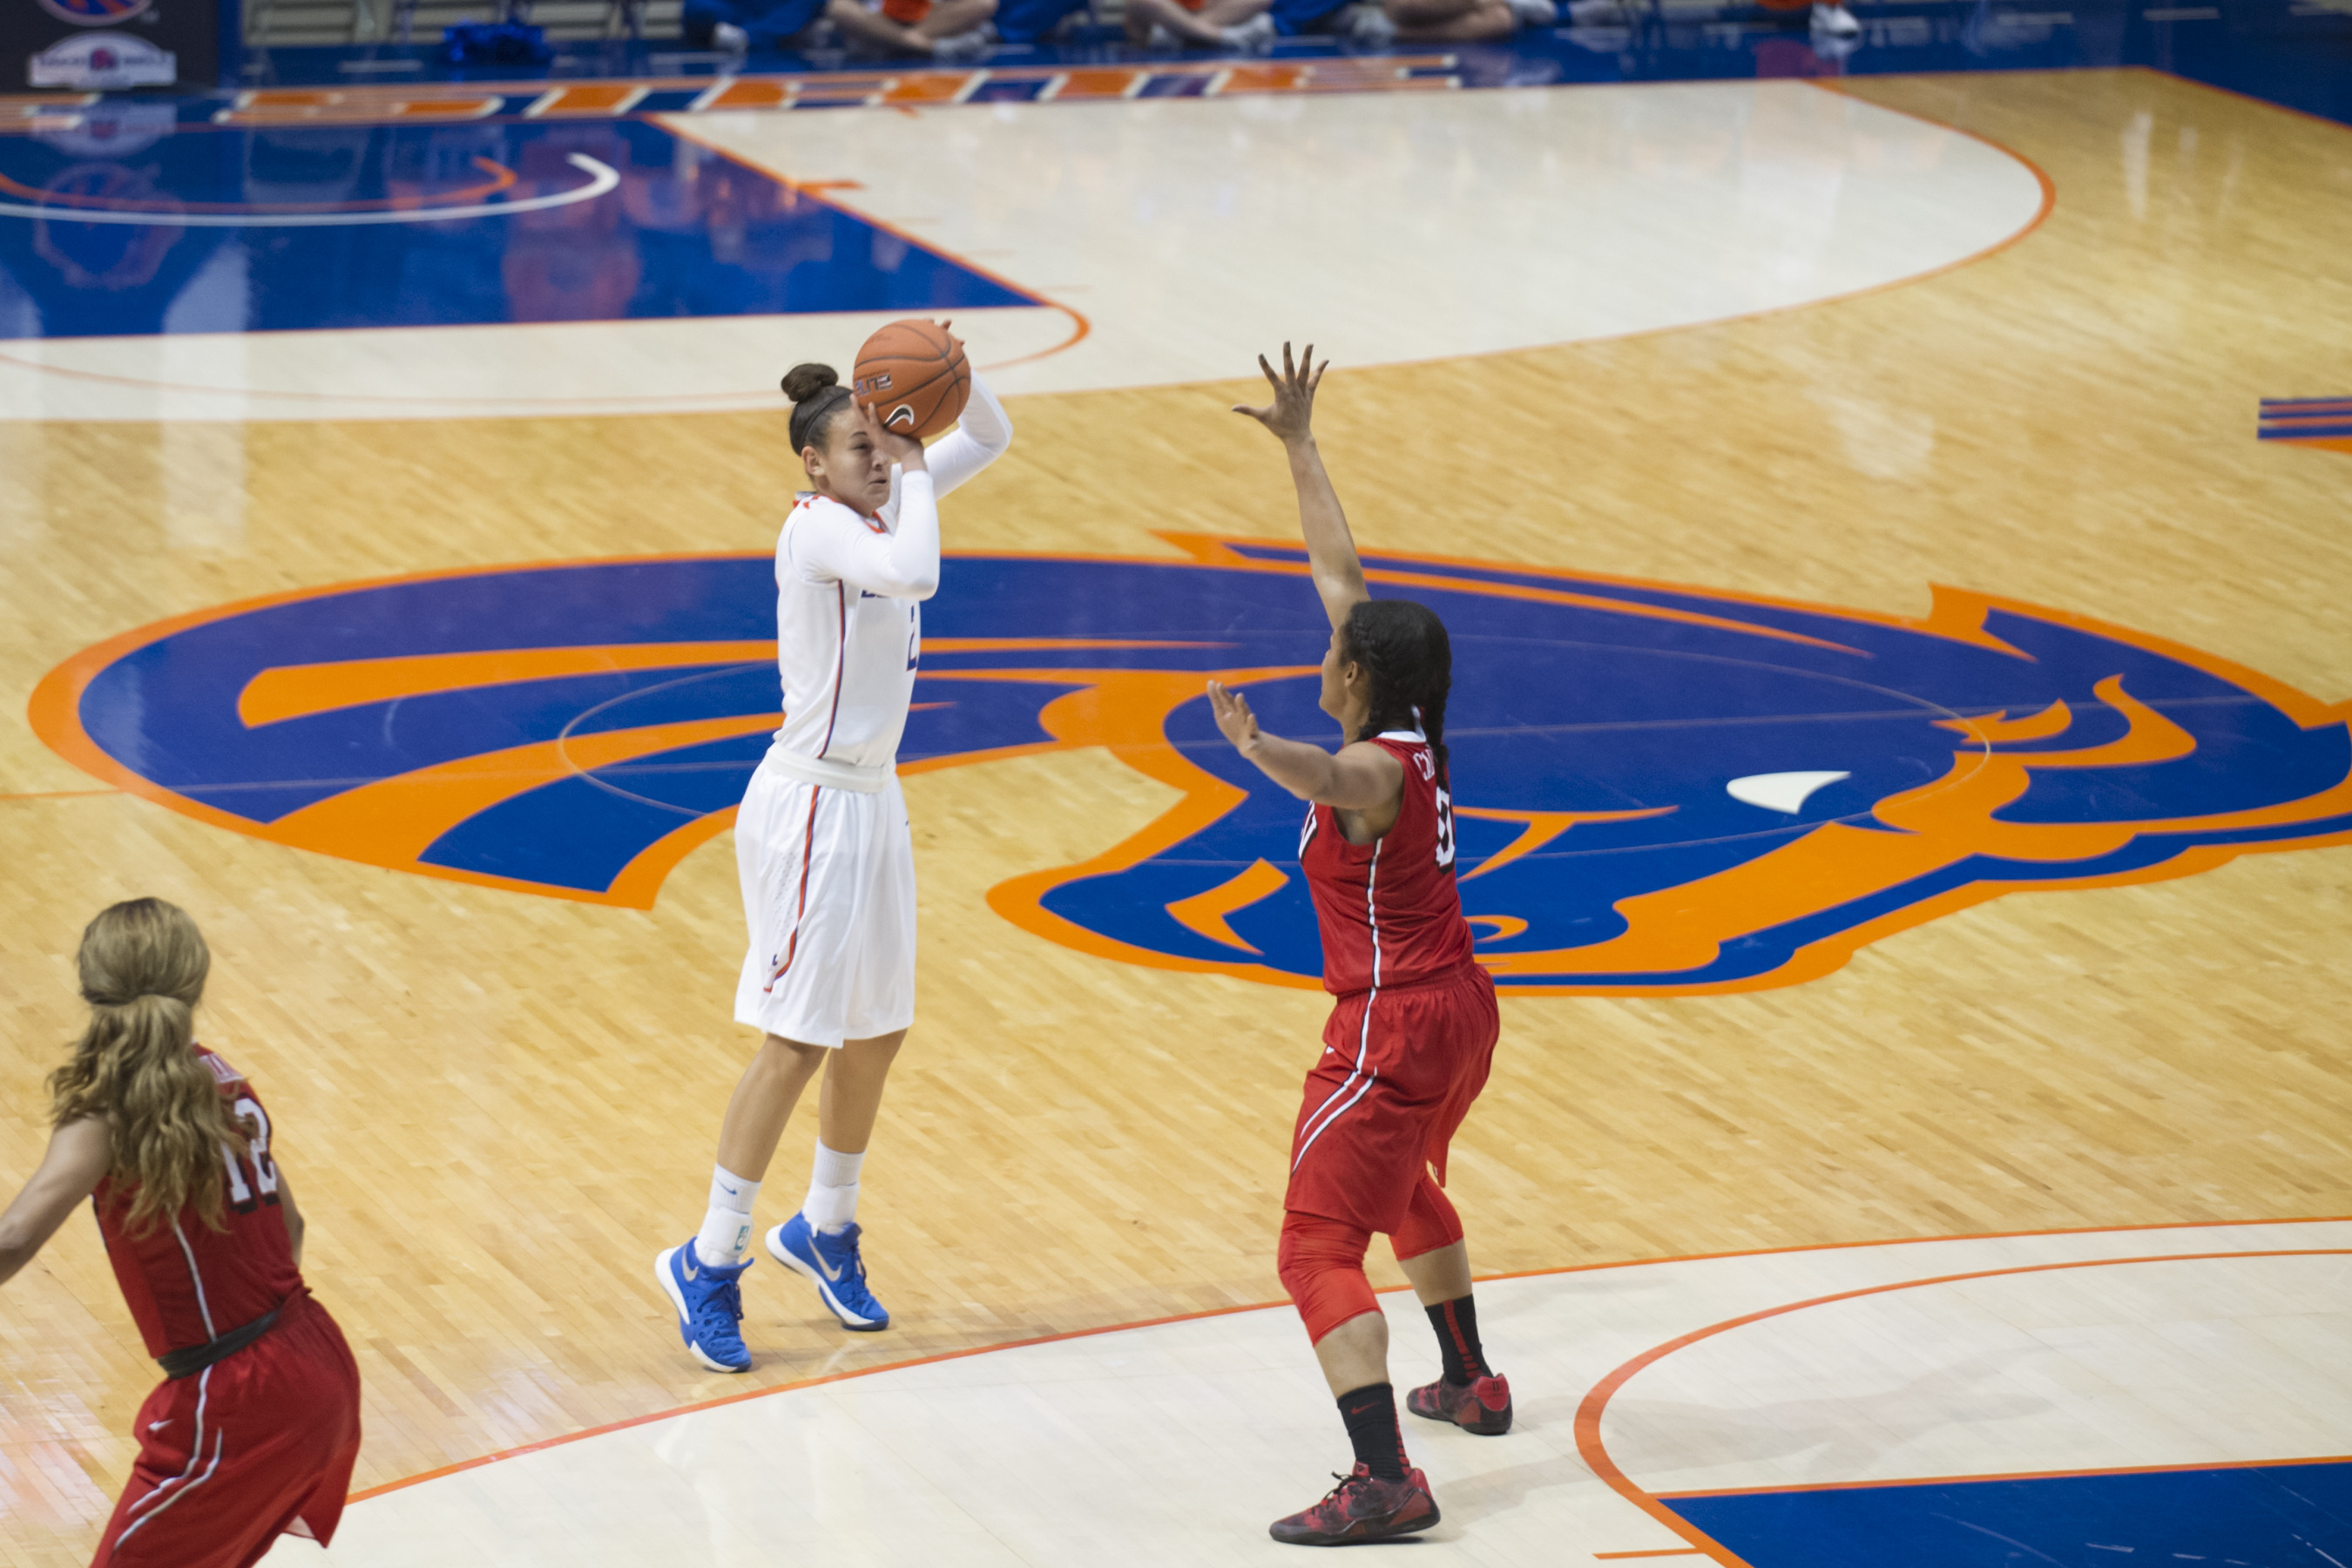 Shalen Shaw recorded her ninth double-double in the loss.